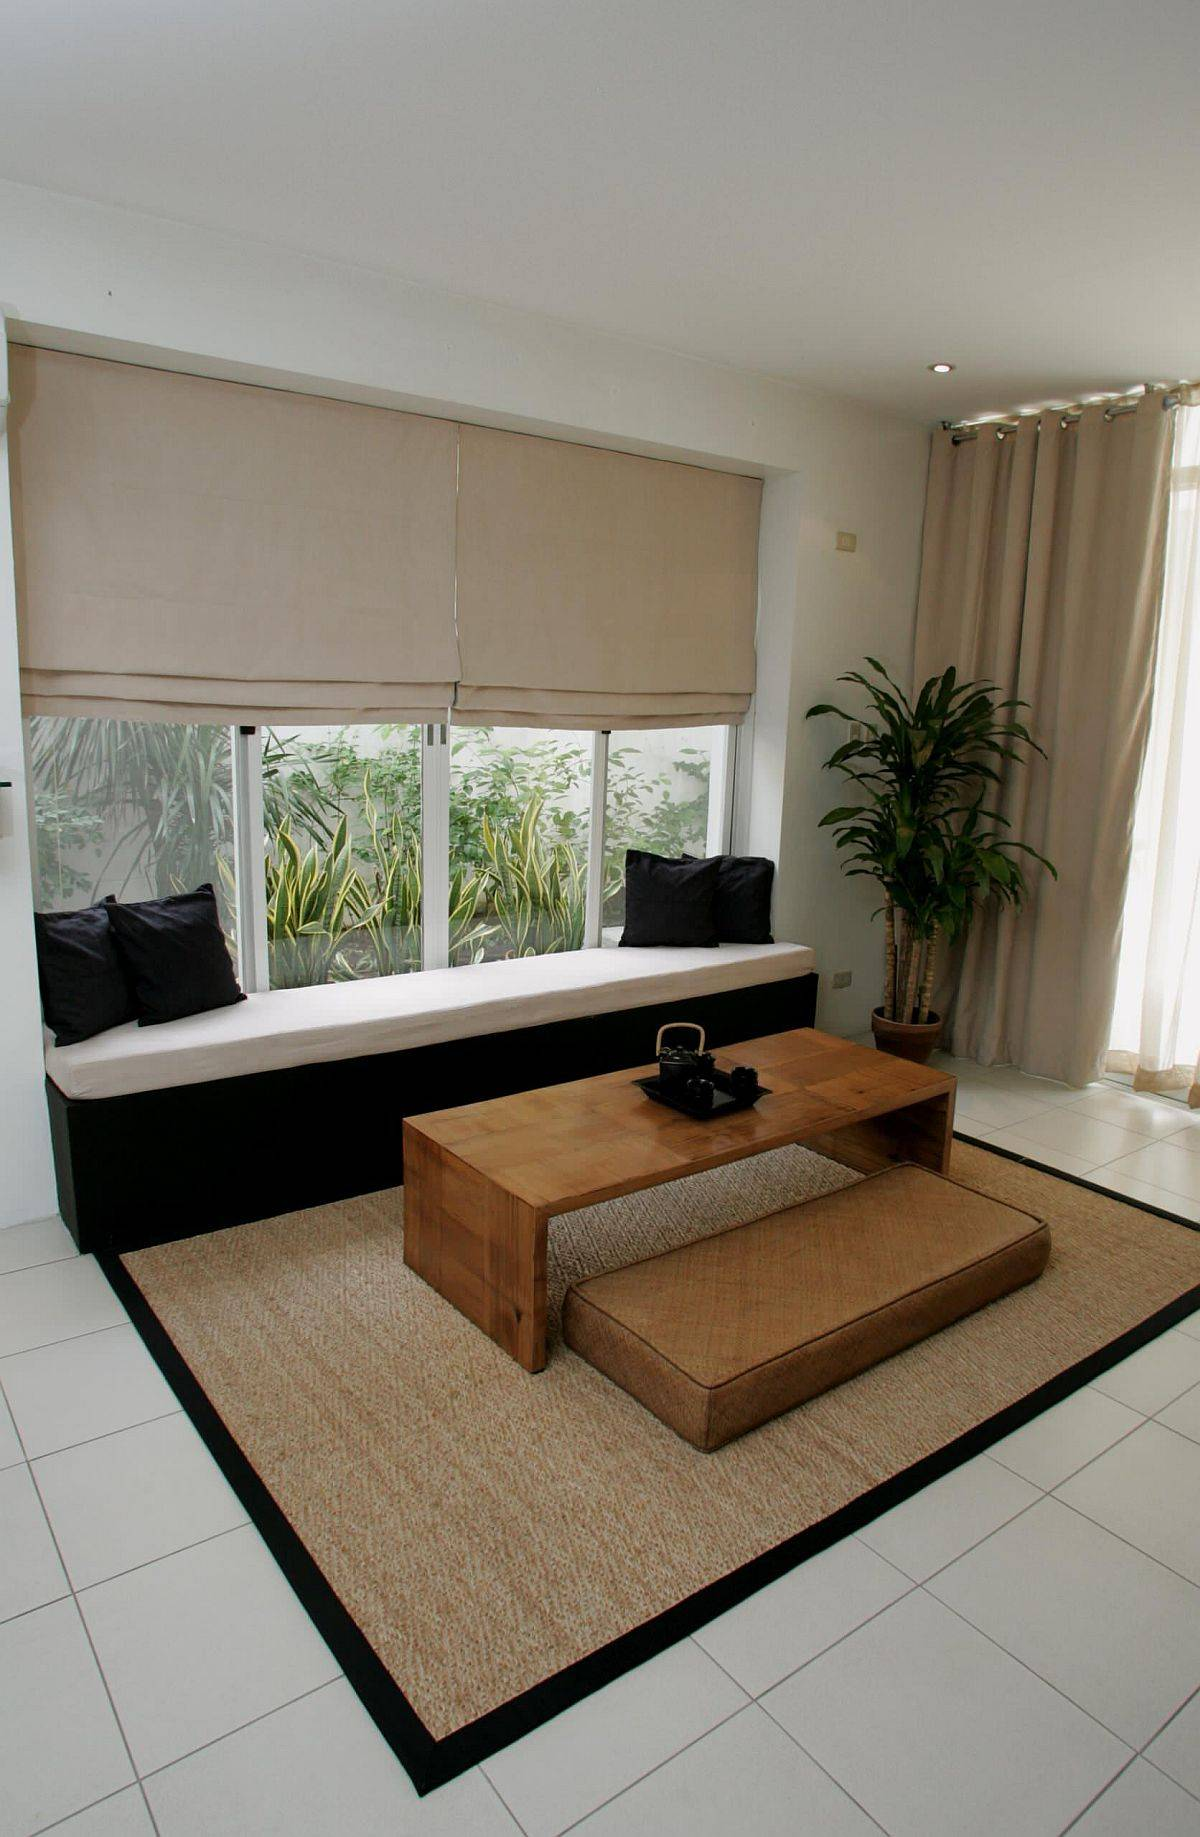 Mat-a-built-in-bench-and-minimal-decor-adorn-this-modern-yoga-space-in-a-living-room-17753